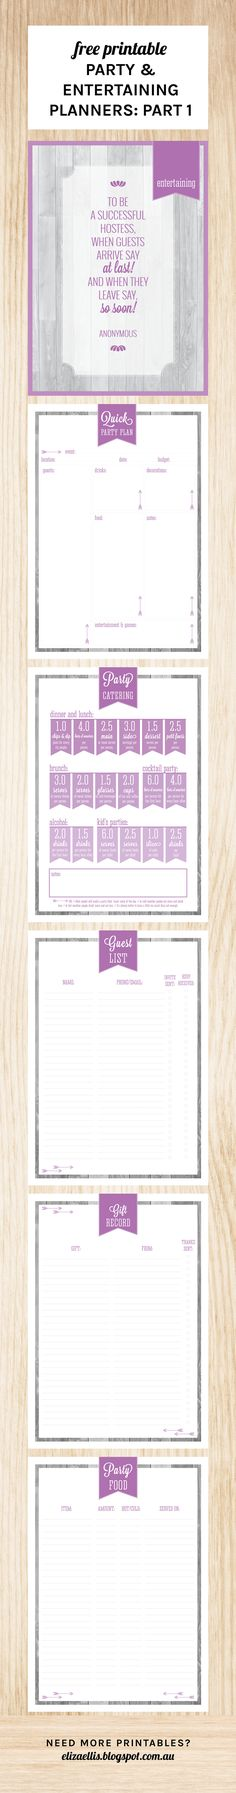 Free Printable Party & Entertaining Planners Part 1. This set includes an Entertaining Section Cover for your Home Management Binder, Home Organizer or Control Journal, as well as a Quick Party Plan, Guest List, Gift Record, Party Catering Amounts guide and  Party Food Planner. Mix and match your party planners for to suit the event you're hosting - you can find Part Two with six more planners on the blog :)